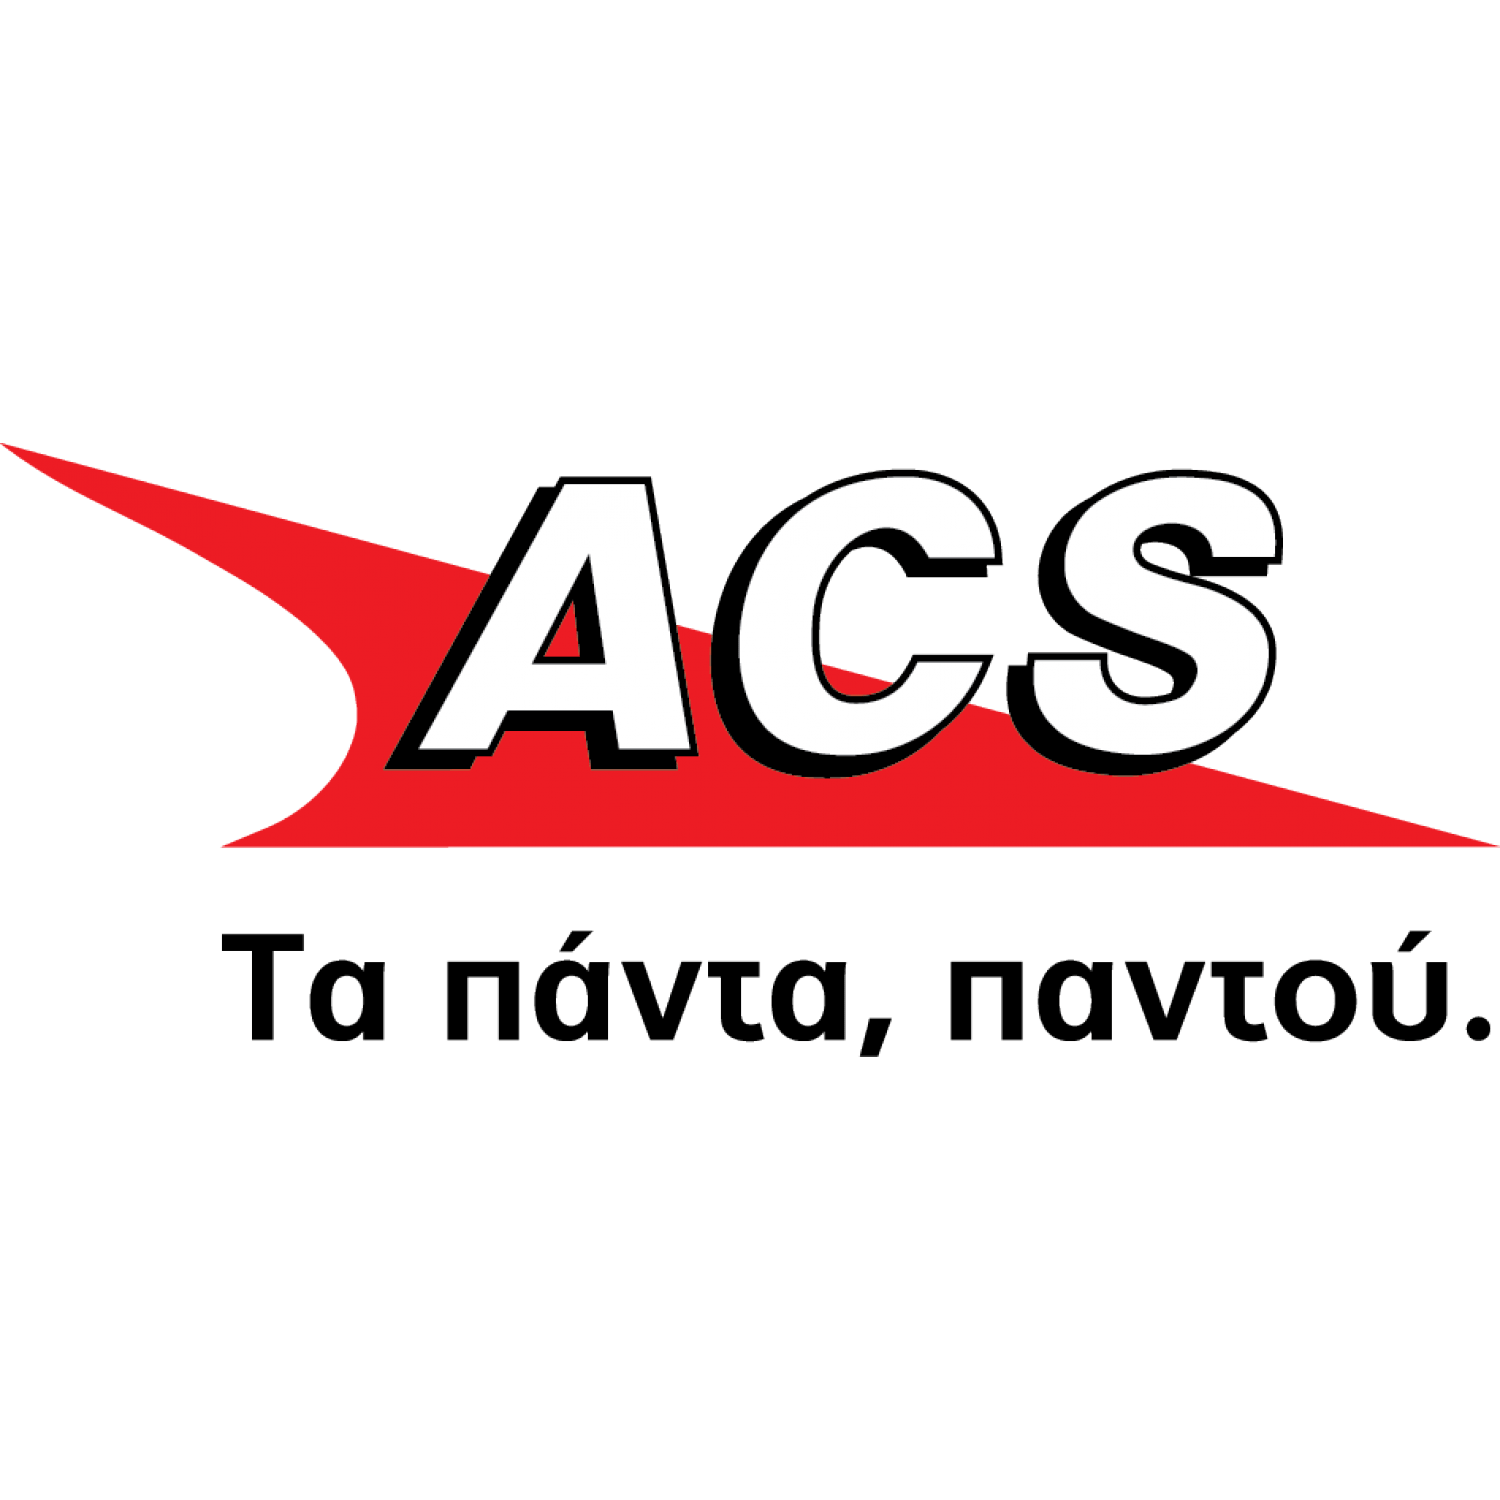 ACS Courier - Αναζήτηση Αποστολής